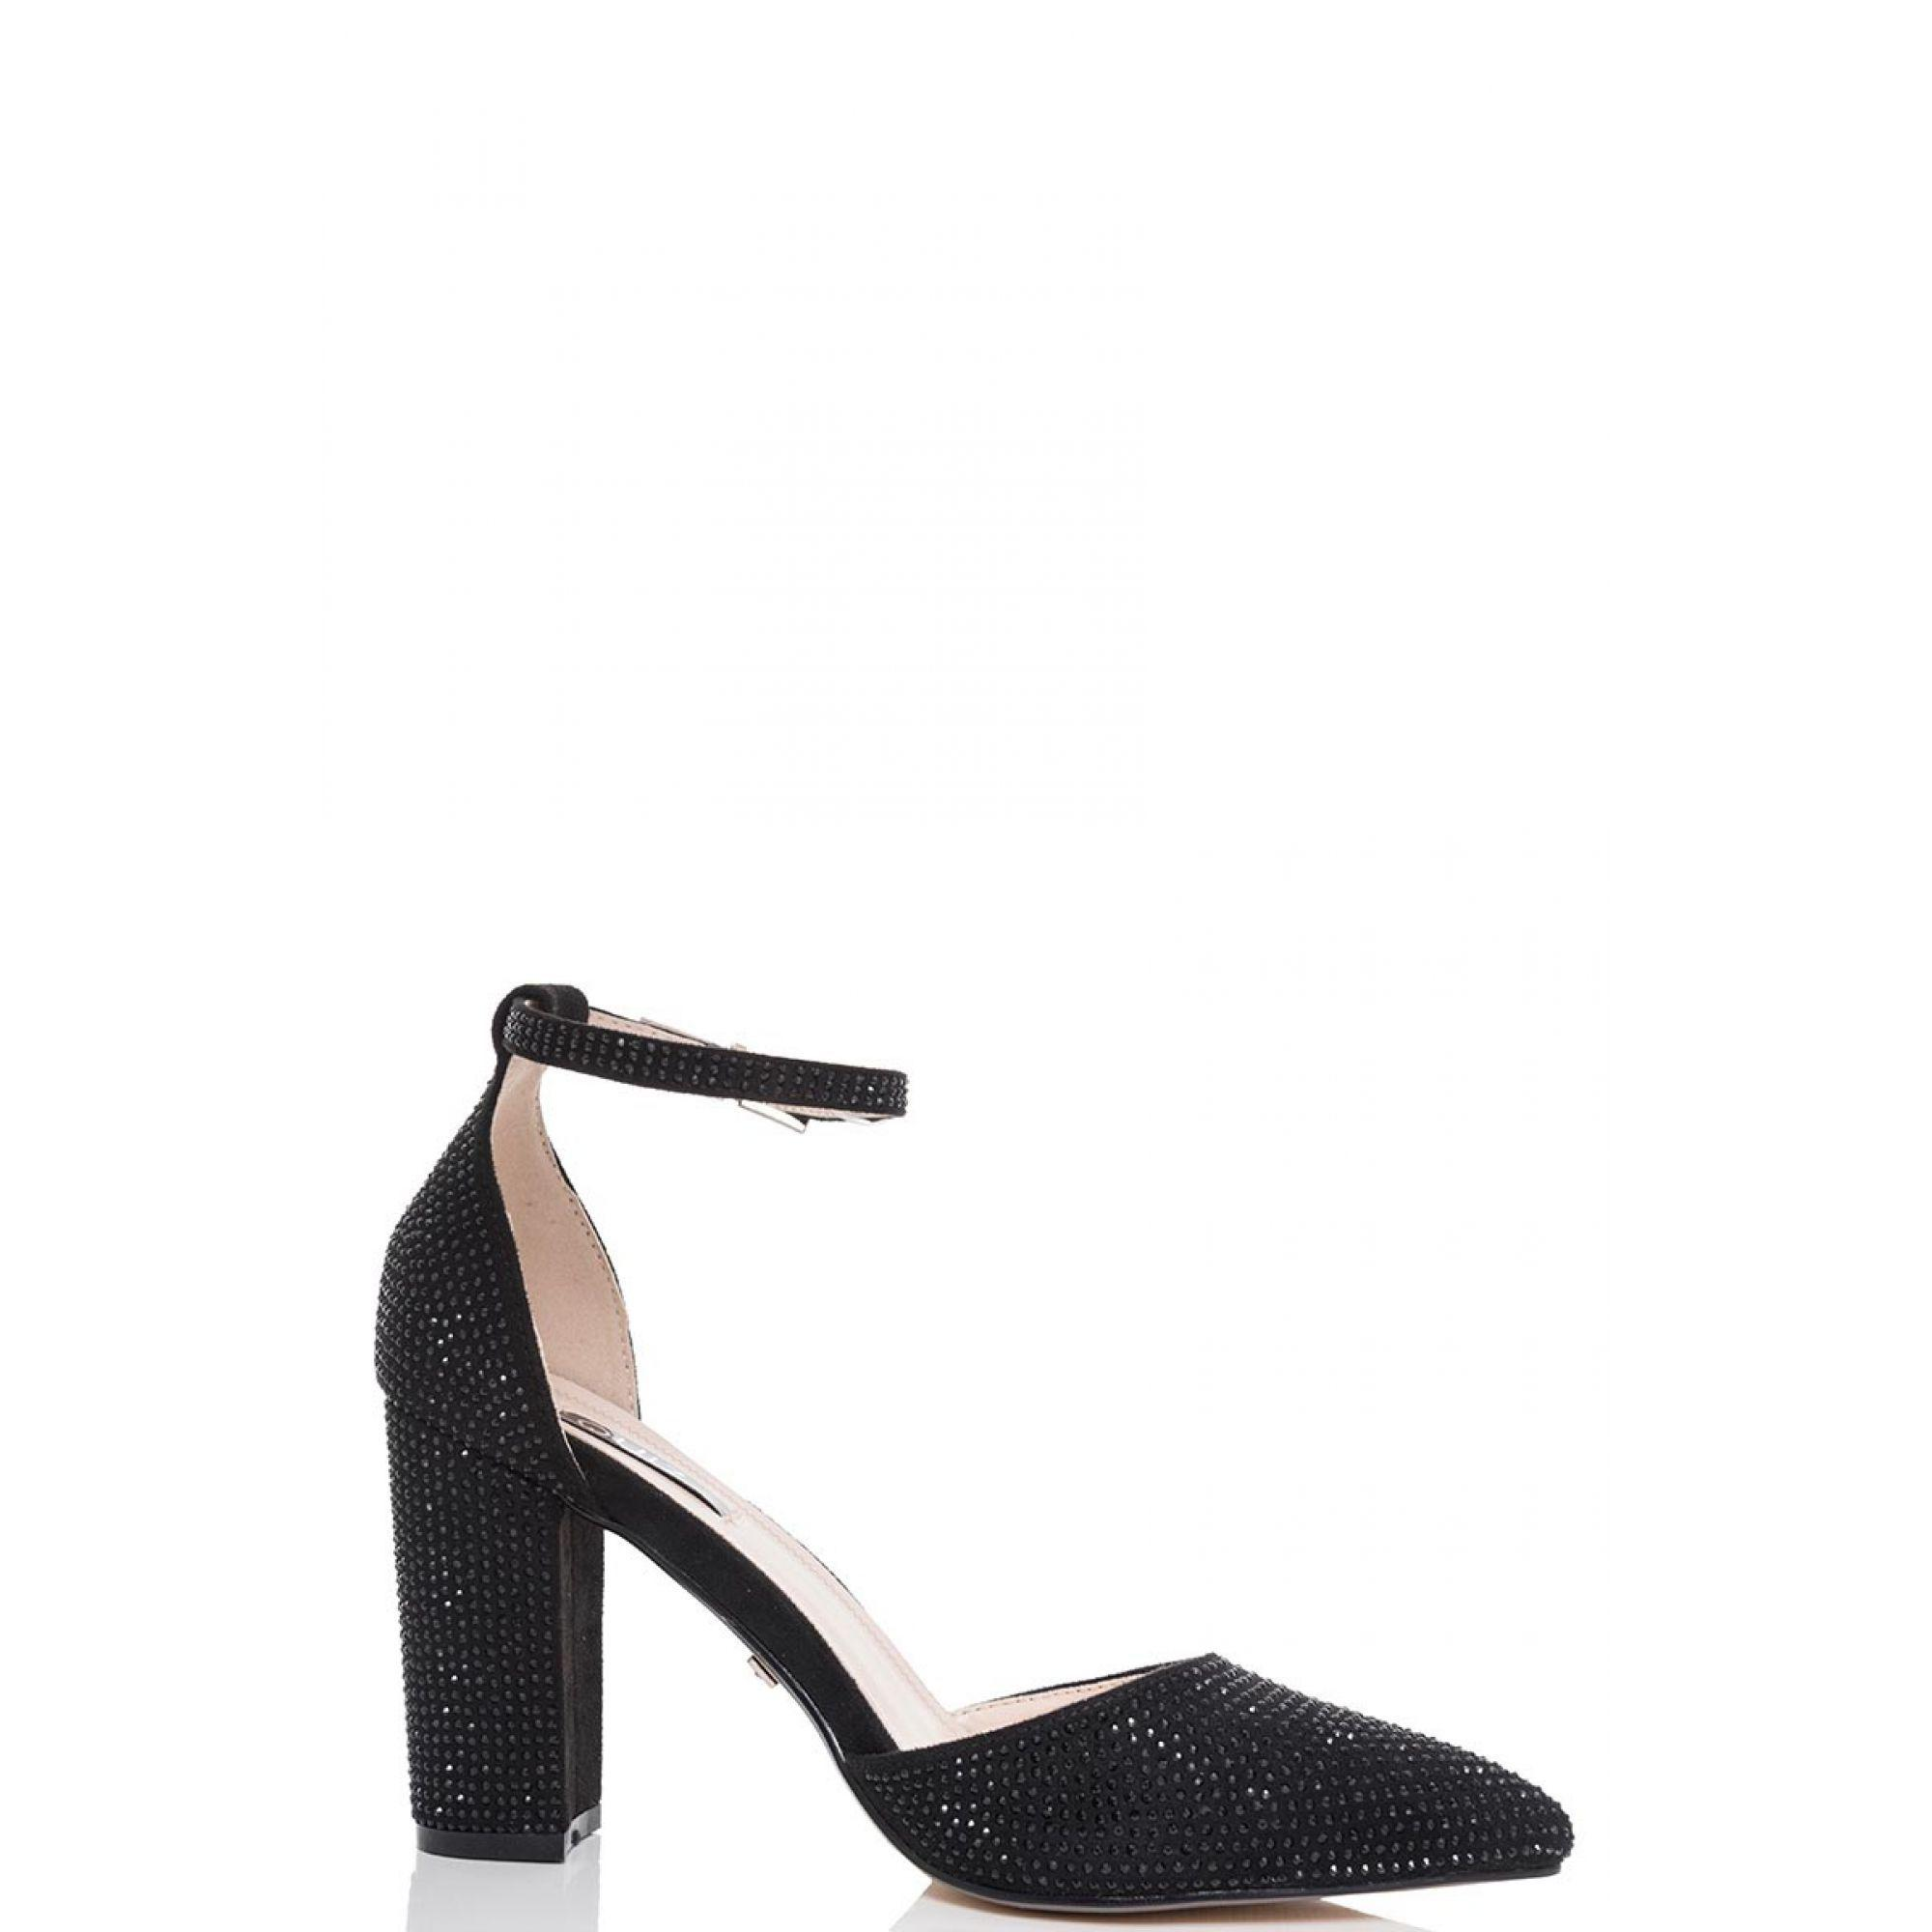 Black diamante pointed toe courts